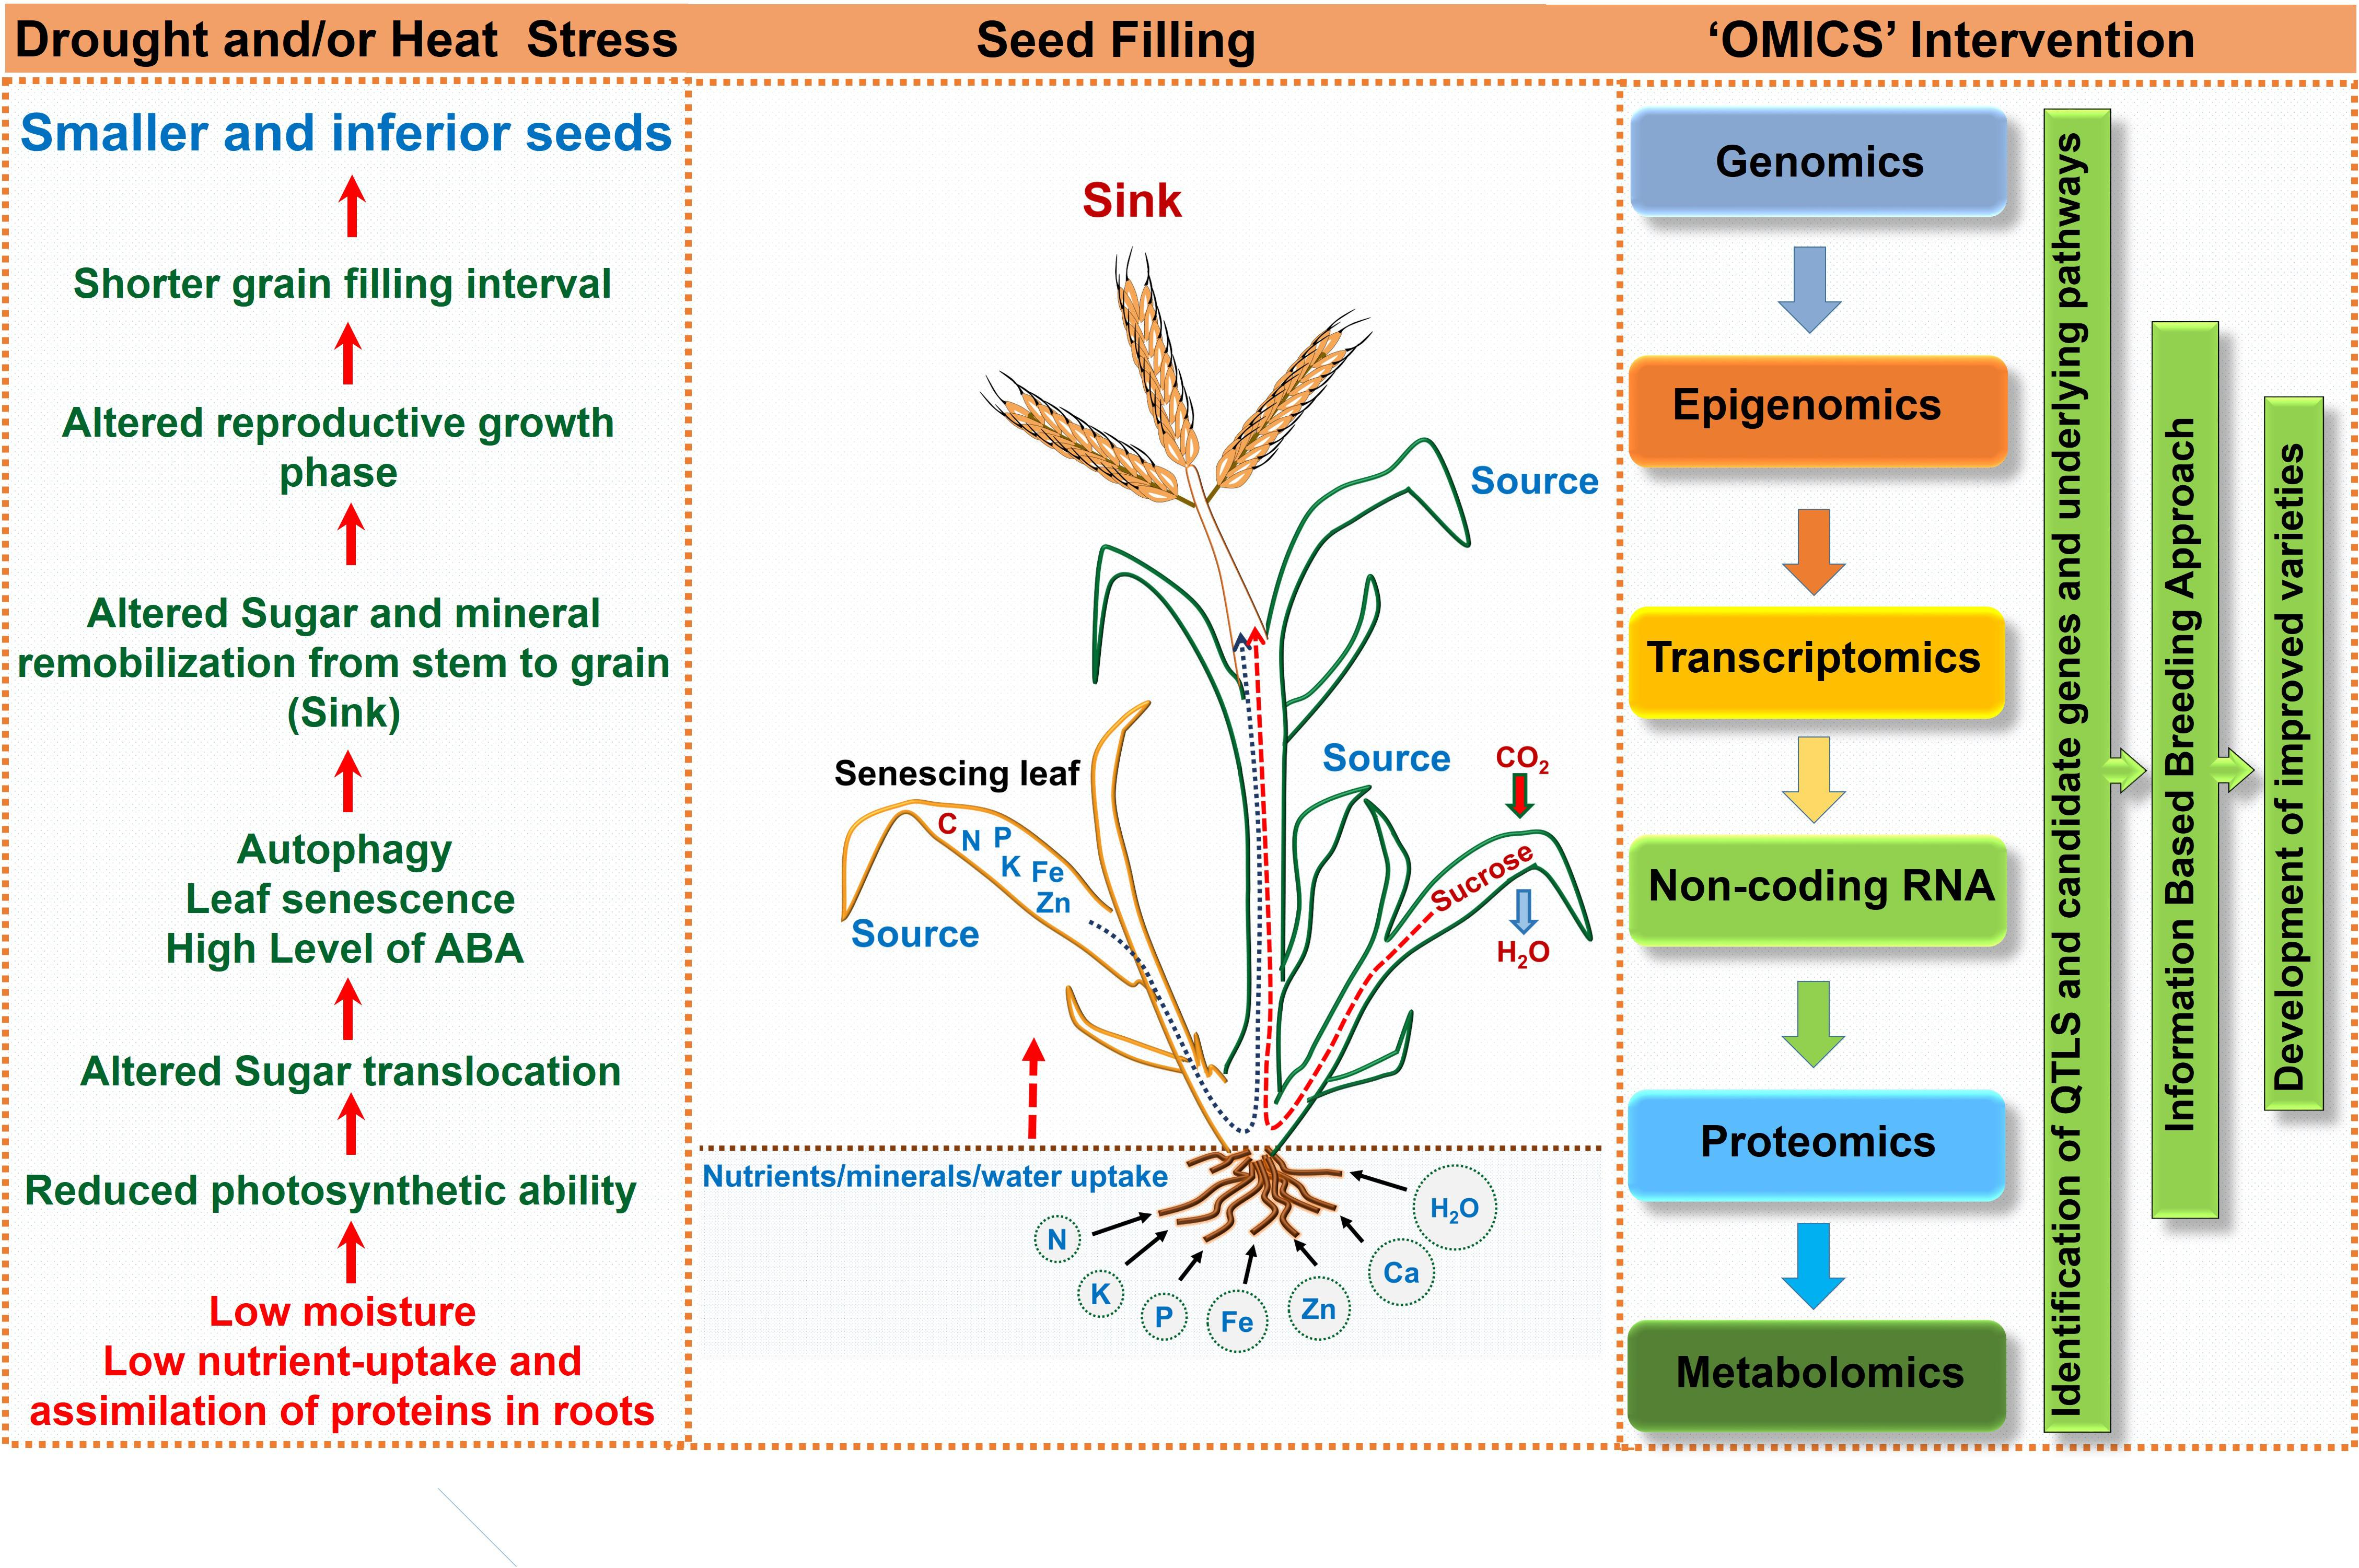 Frontiers | Drought or/and Heat-Stress Effects on Seed